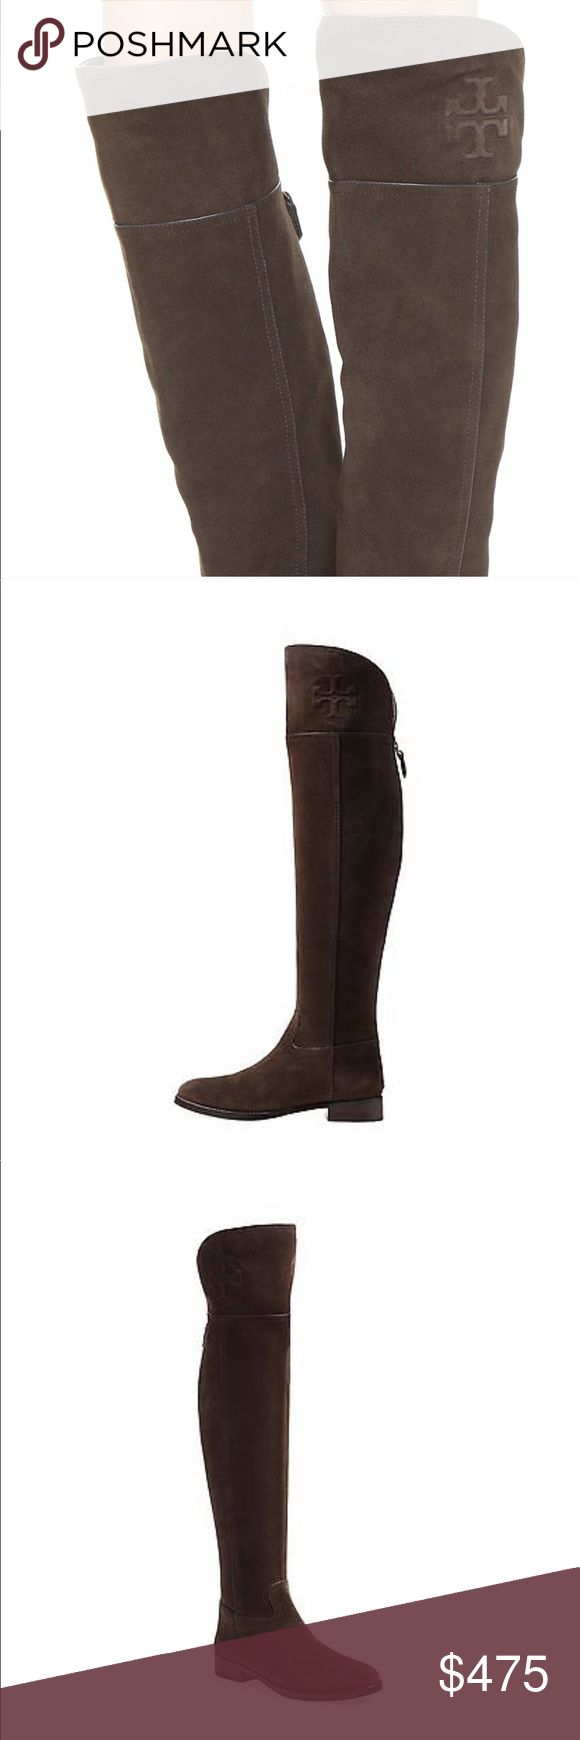 7cce9e487 NWT Authentic Tory Burch Simone over the knee boot Simone calf 259 over the  knee brown suede boots with iconic logo on the side. Never been worn!